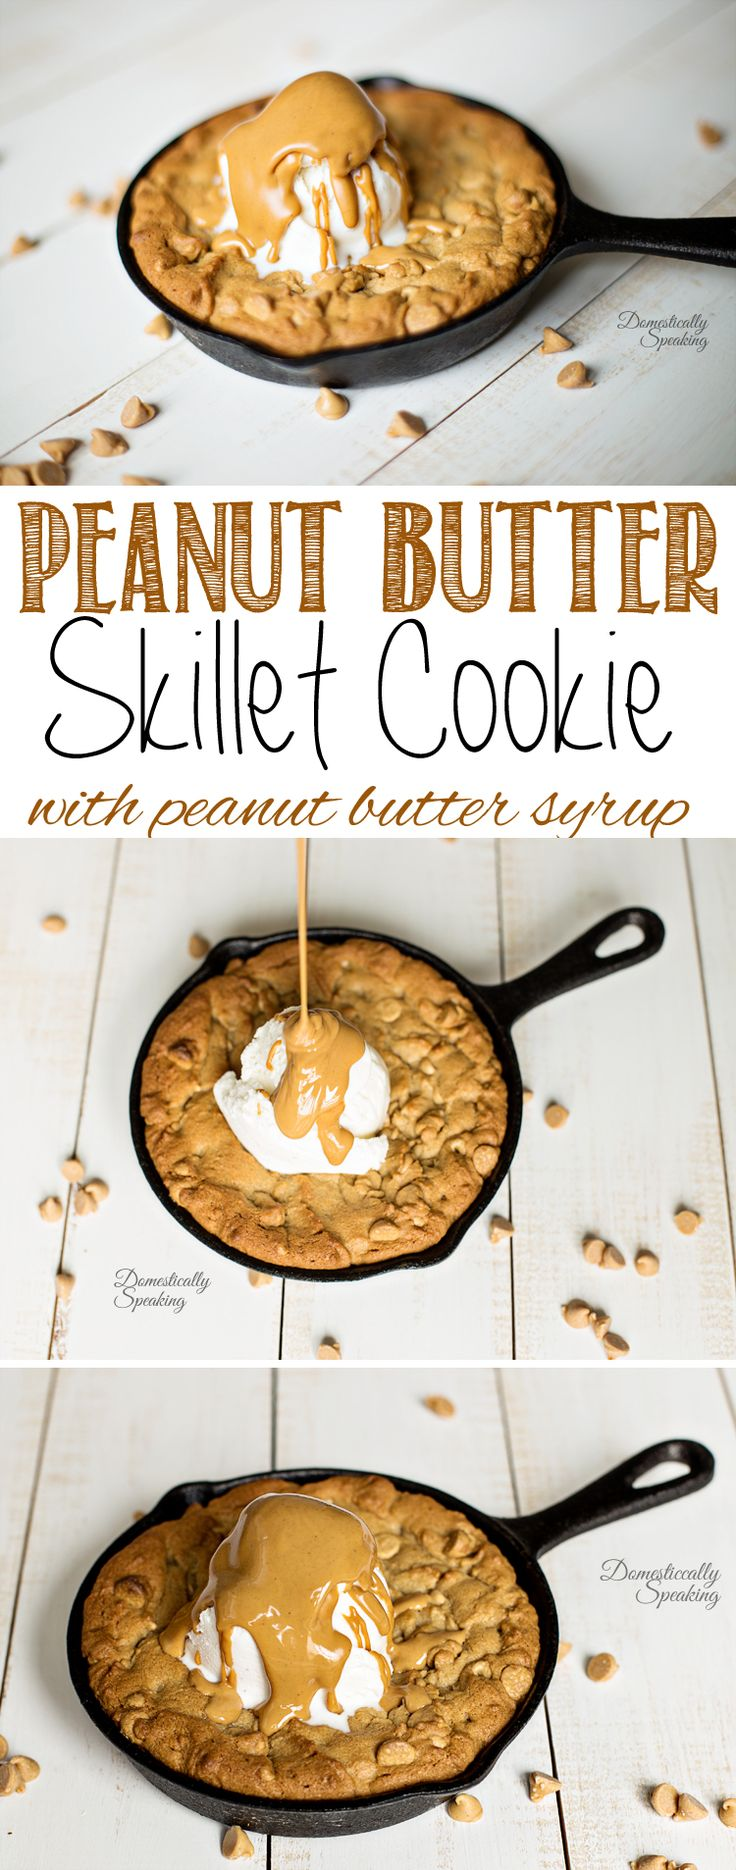 Skillet Peanut Butter Cookie drizzled with Peanut Butter Syrup perfect for National Peanut Butter Day